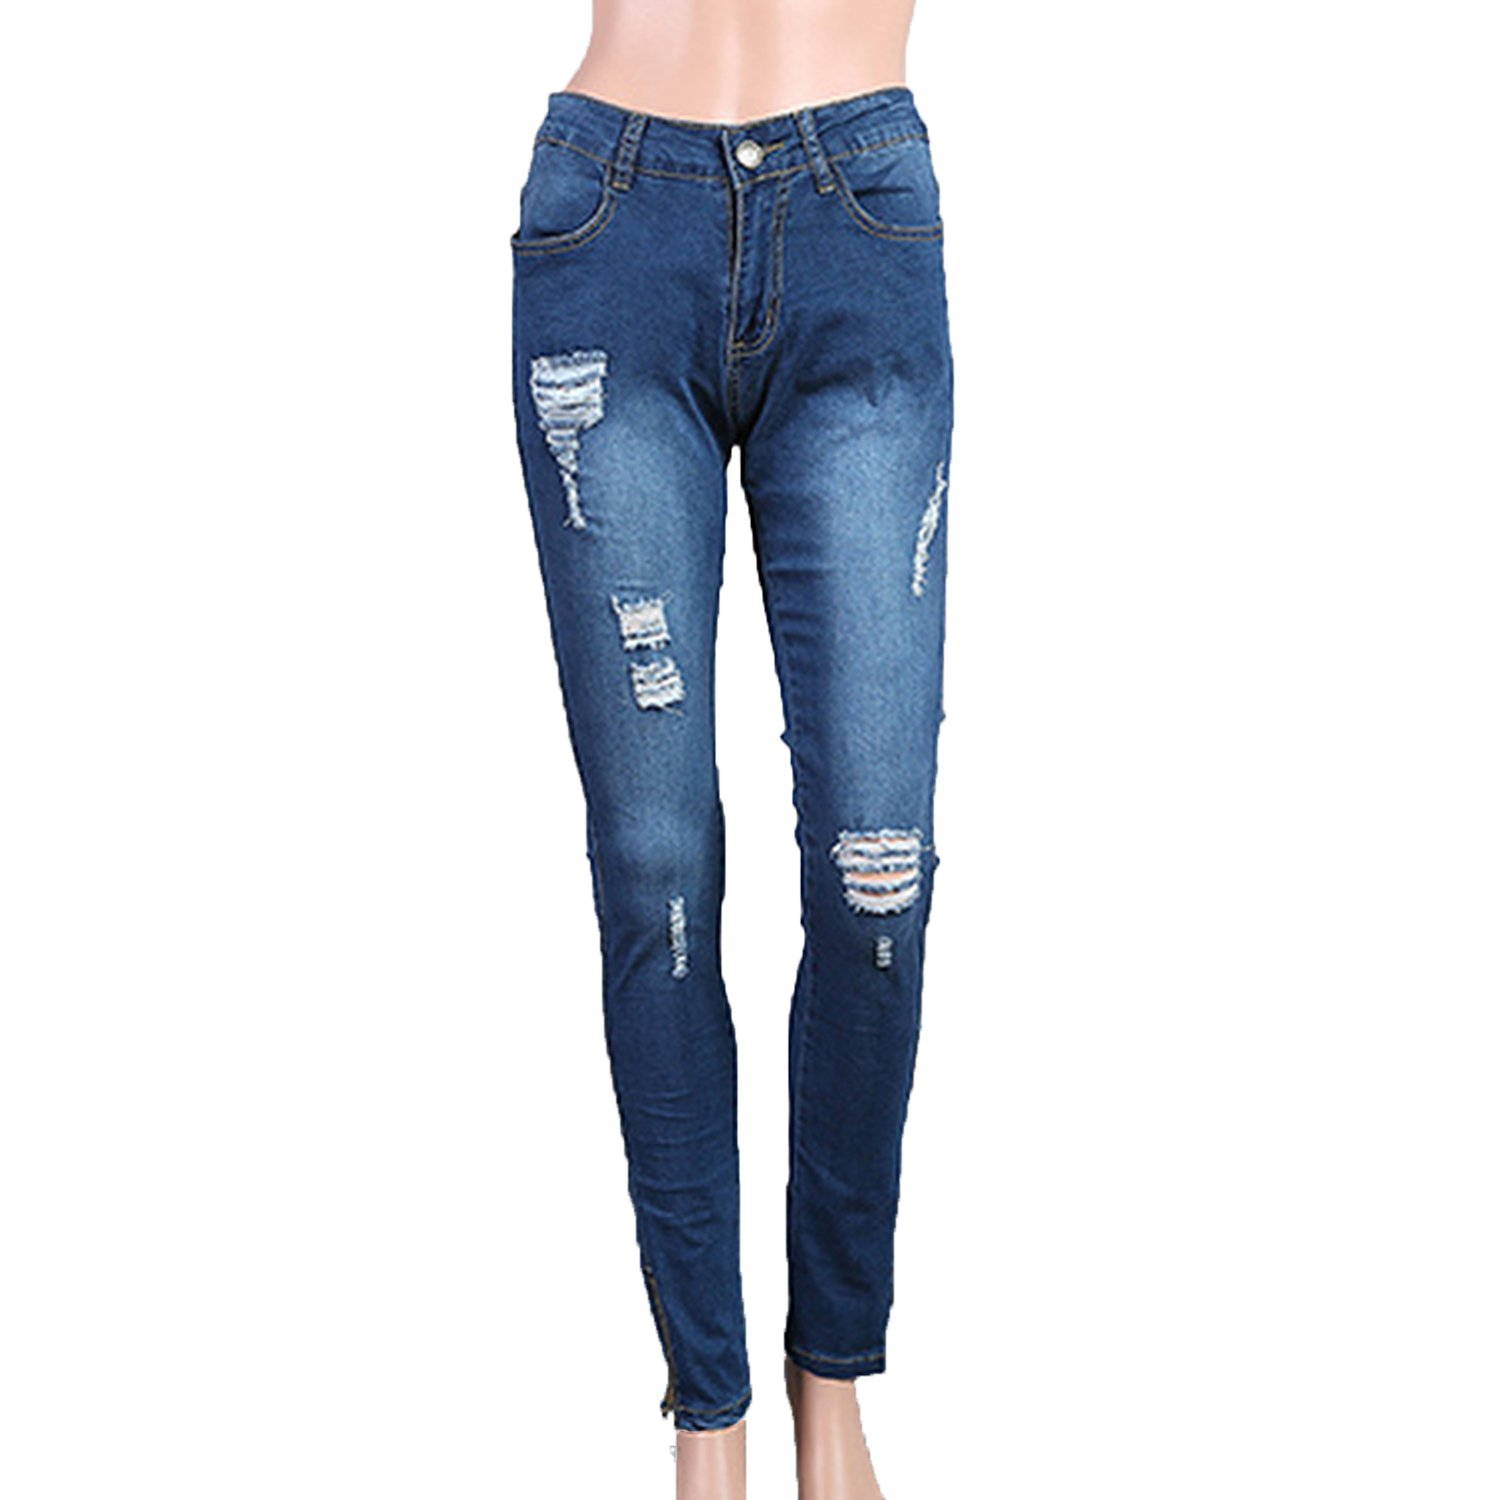 Small-shop Pants Sexy Hole Decoration Womans Casual Pants Women at Amazon  Women's Clothing store: